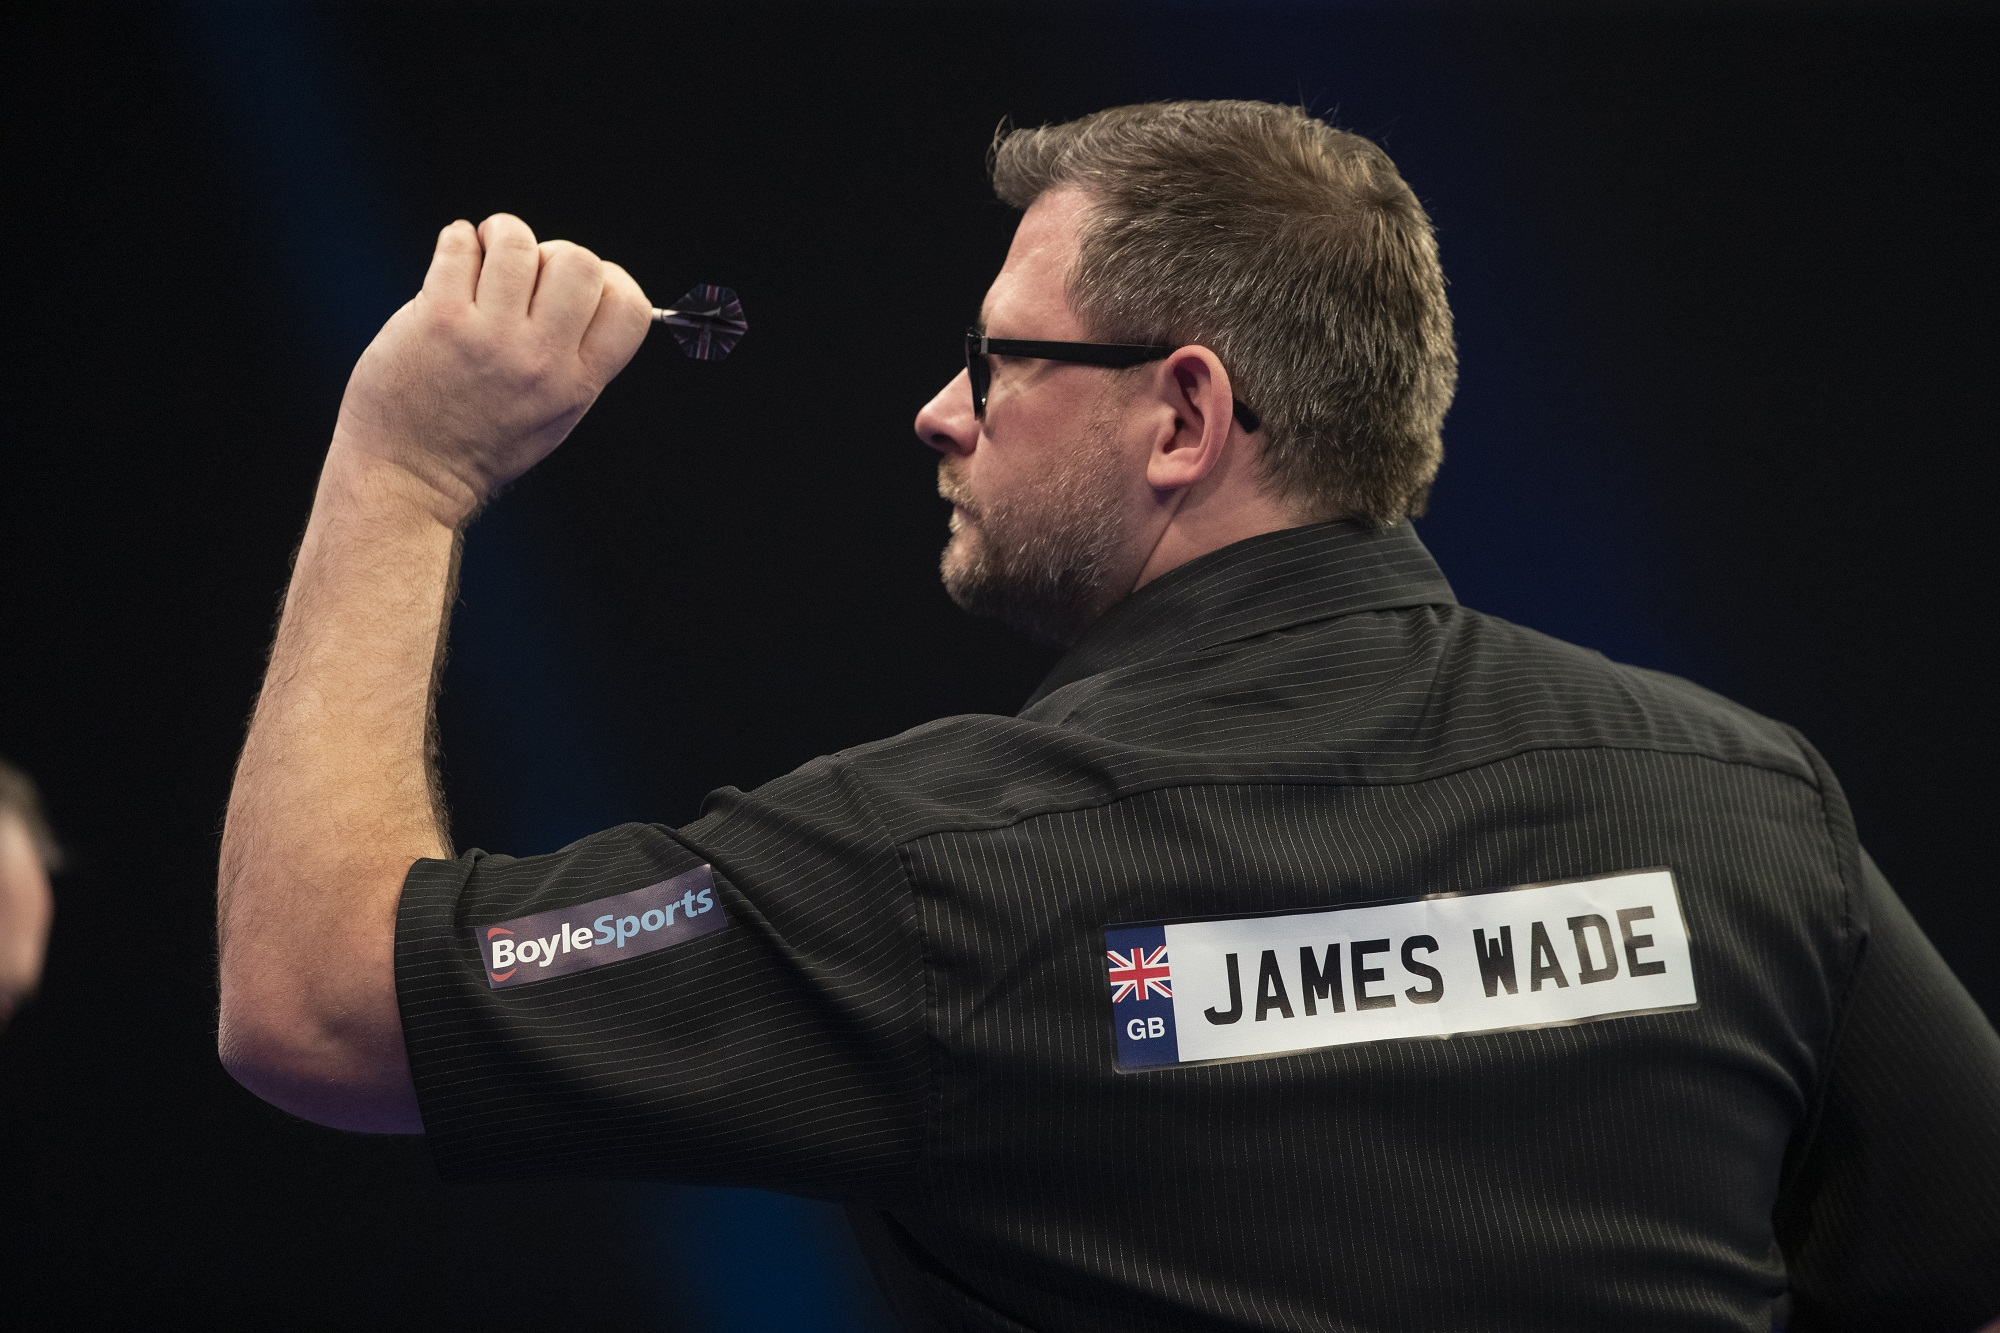 BoyleSports Grand Slam of Darts Day 5 Recommended Bets